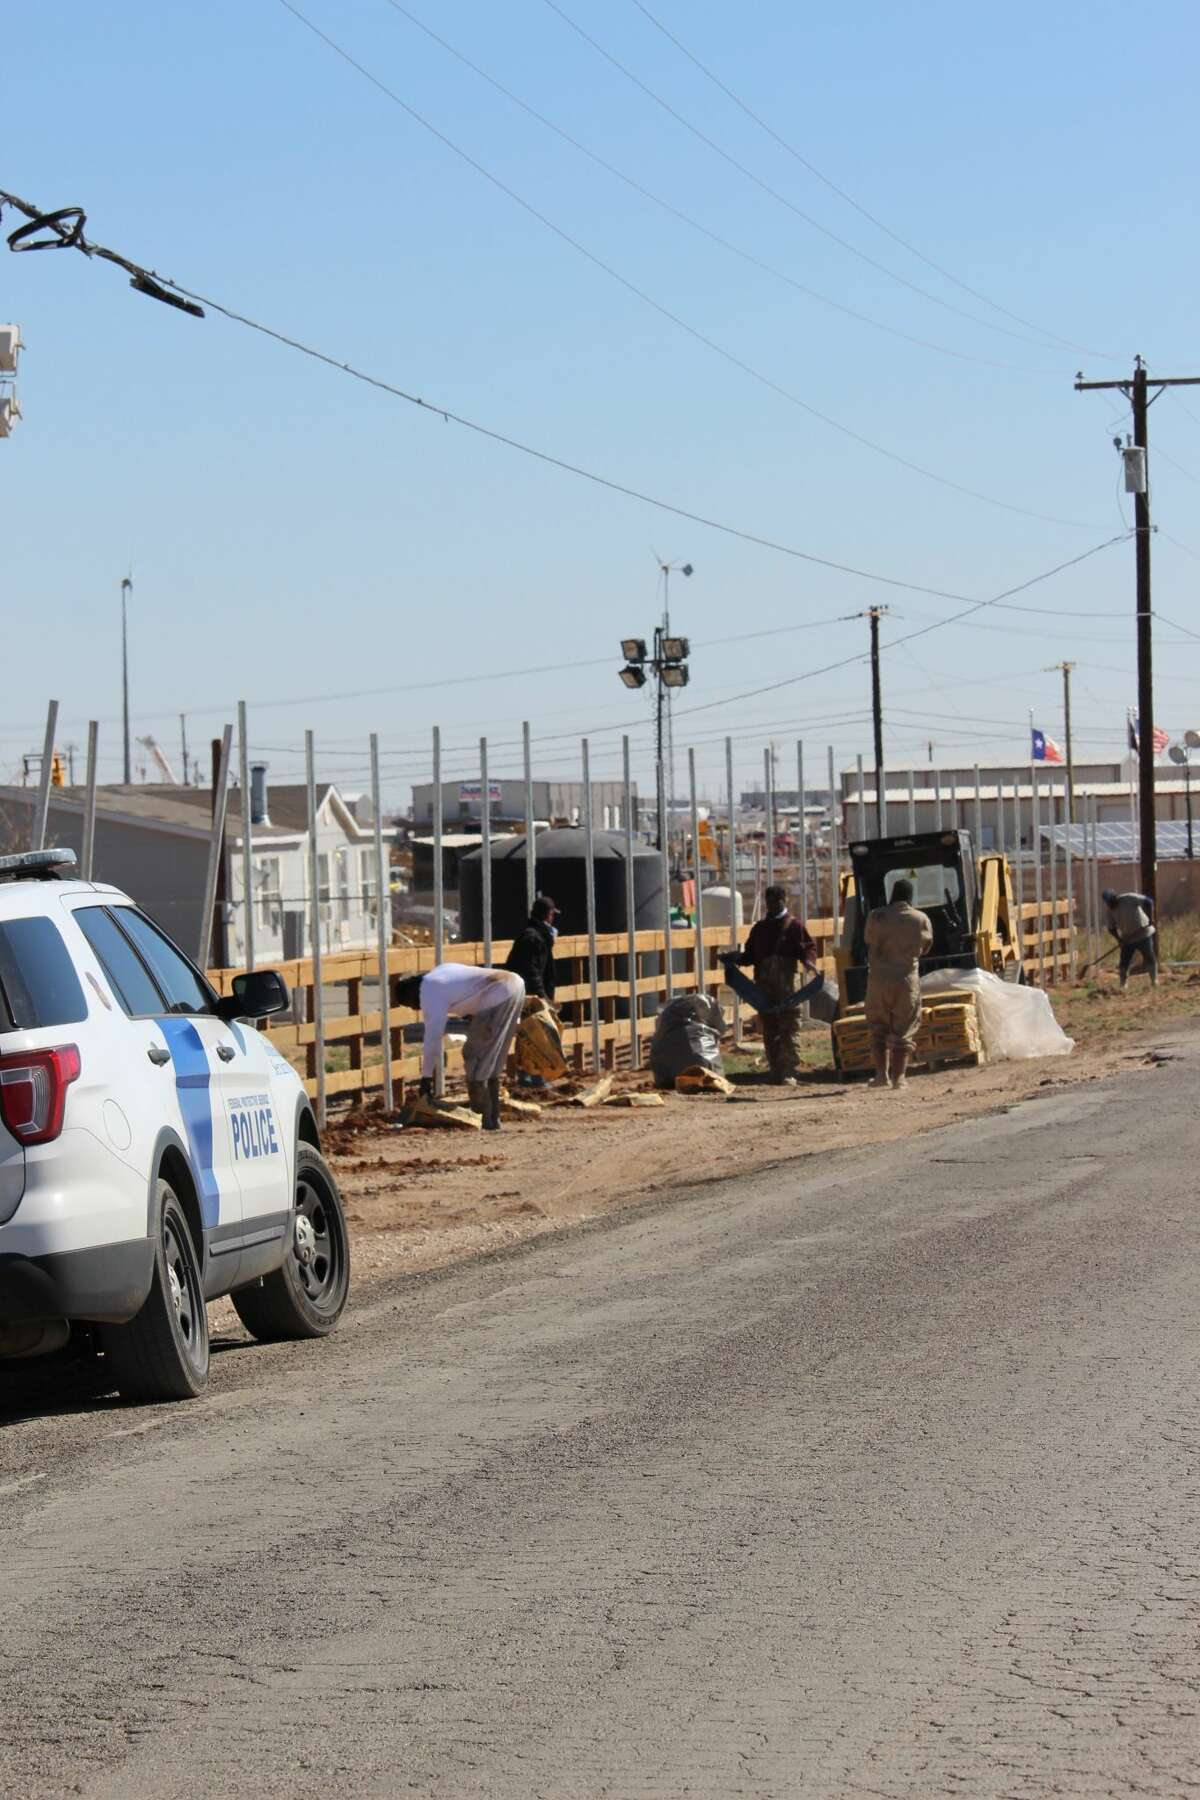 A fence is being built around the facility in Midland County that is housing unaccompanied juvenile migrants who crossed the U.S.-Mexico border on Thursday March 18, 2021. (Mercedes Cordero/Midland Reporter-Telegram)